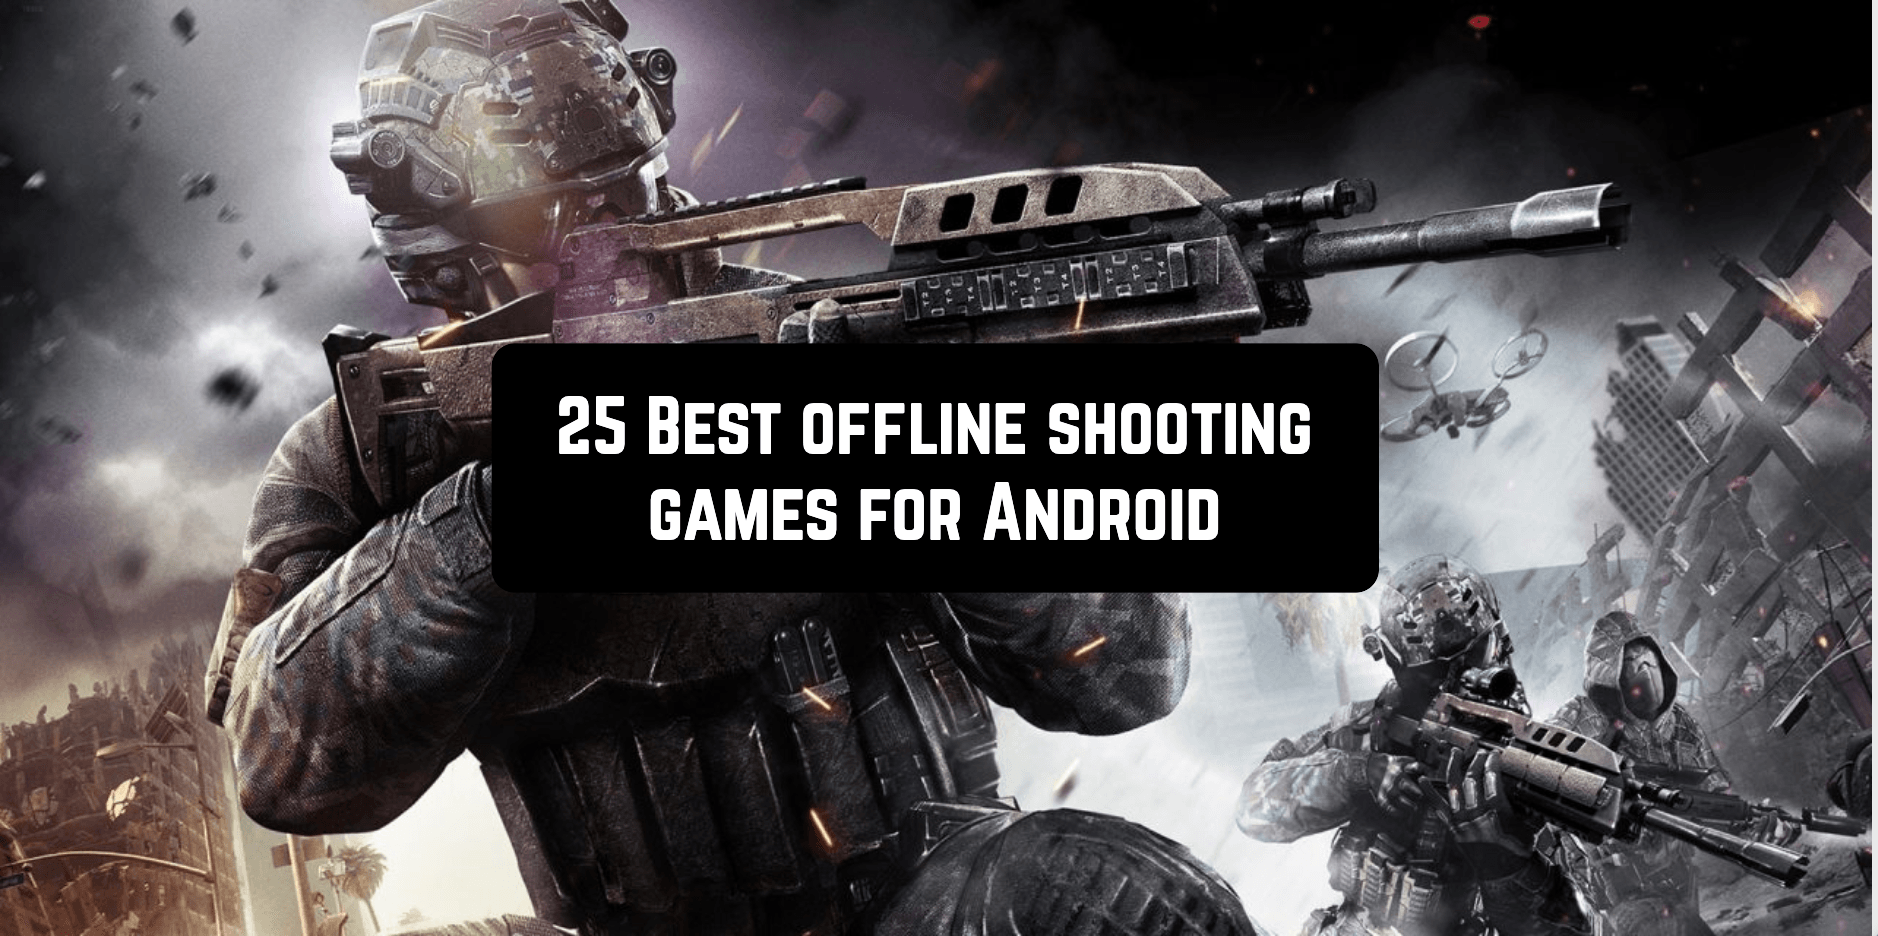 3D Gun Games No Download 25 best offline shooting games for android | android apps